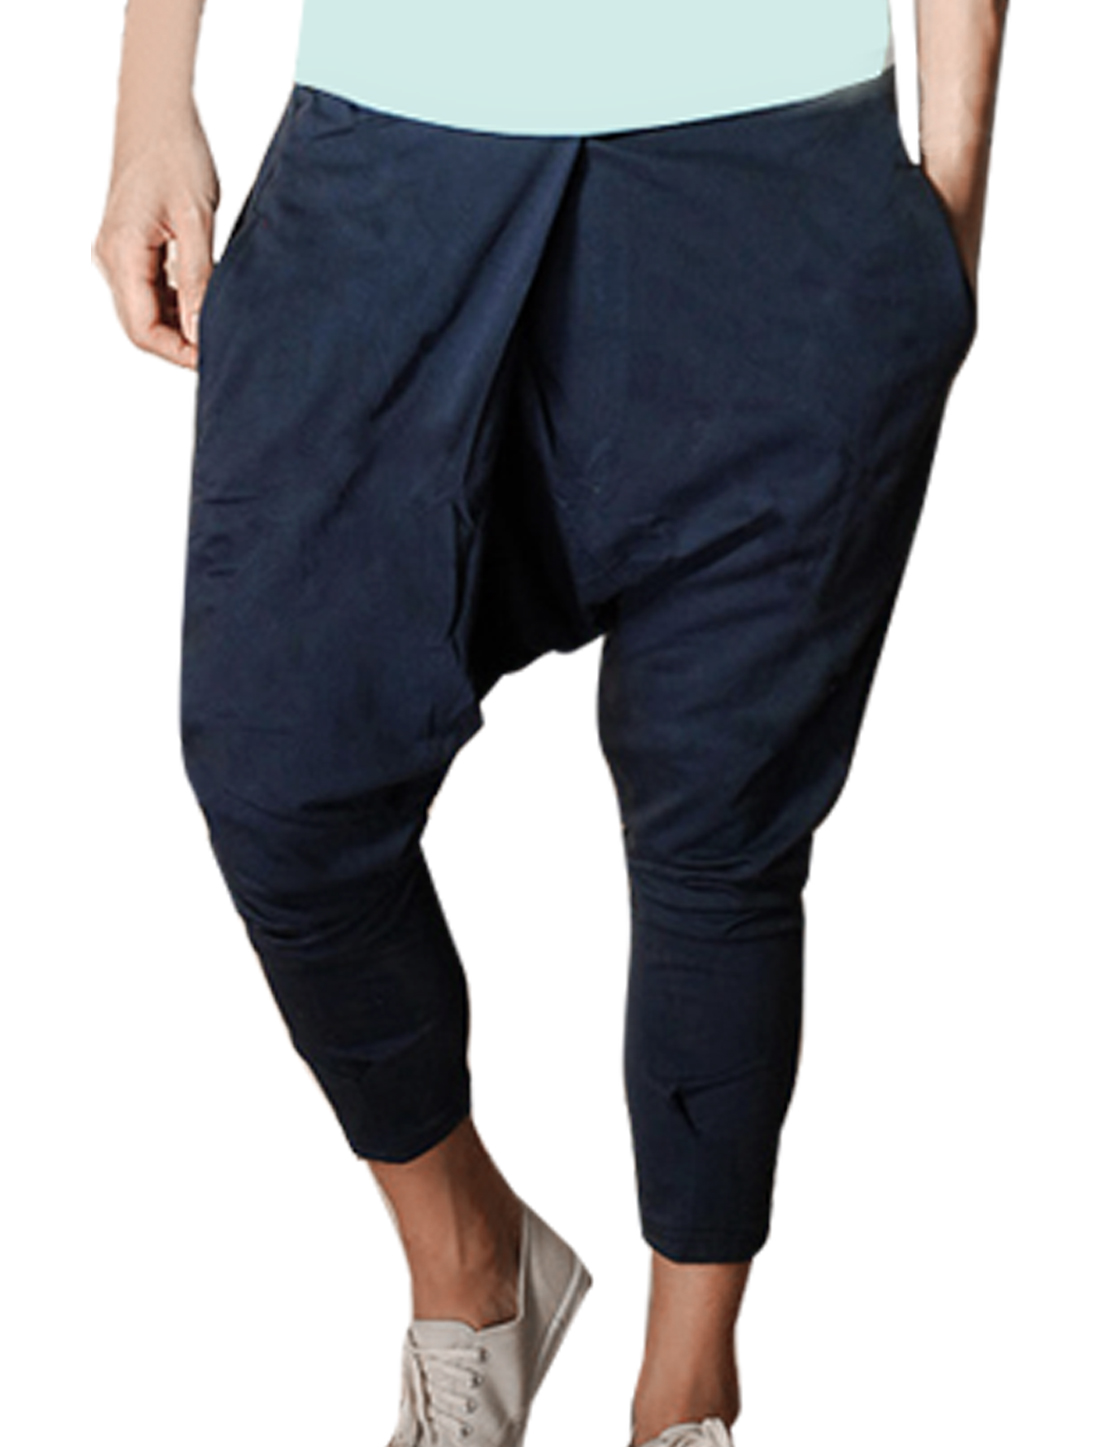 Men Elastic Waist Straight Legs Stylish Harem Pants Dark Blue W36